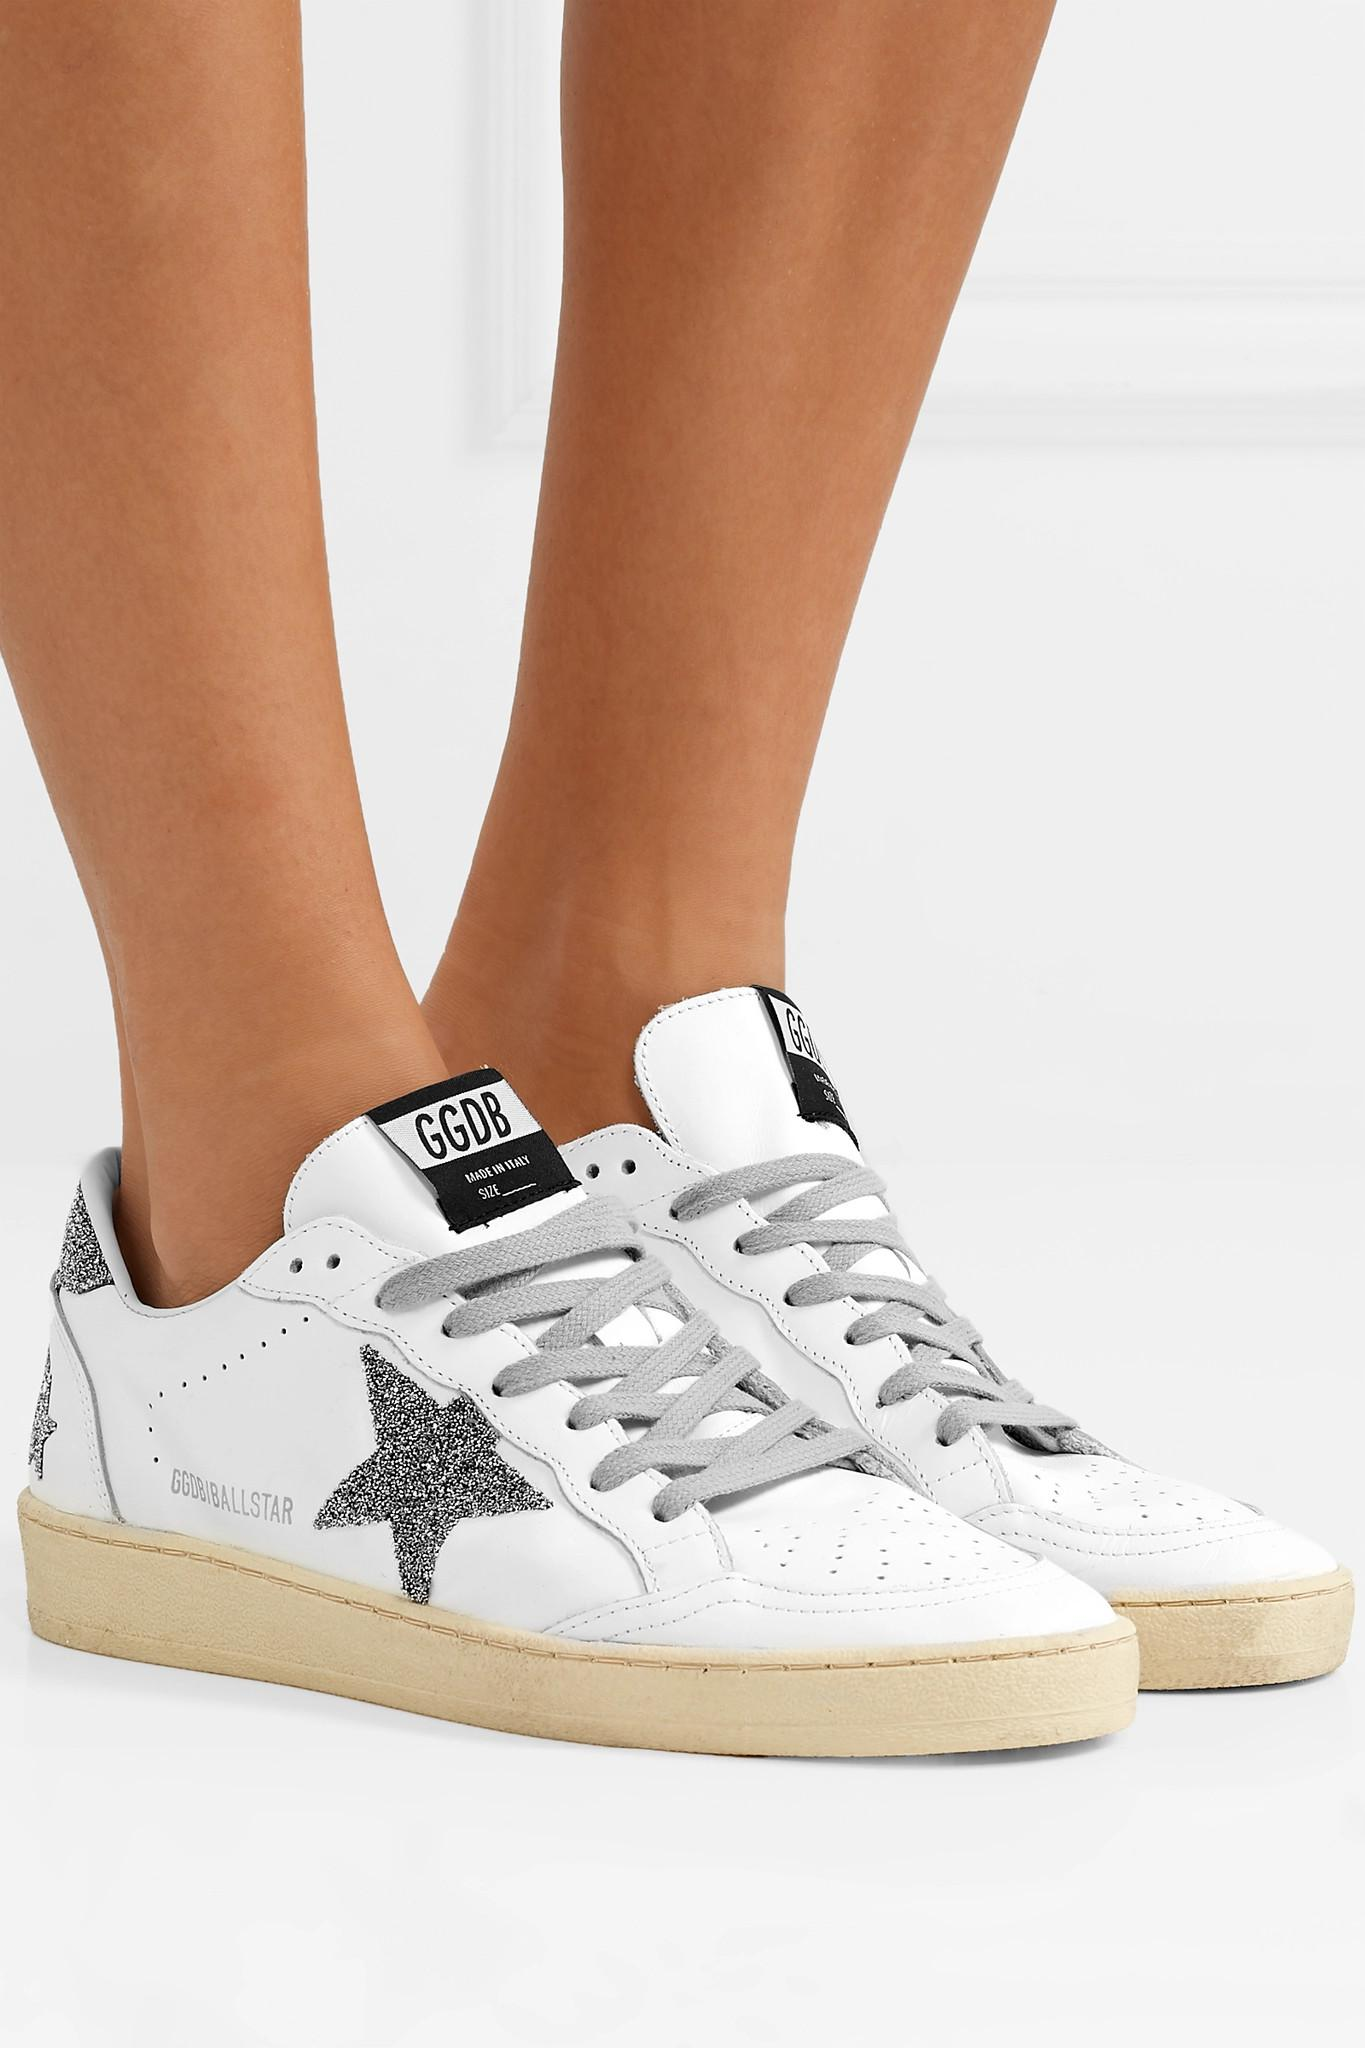 6411beb06eb0 Golden Goose Deluxe Brand - White Ball Star Swarovski Crystal-embellished  Leather Sneakers - Lyst. View fullscreen